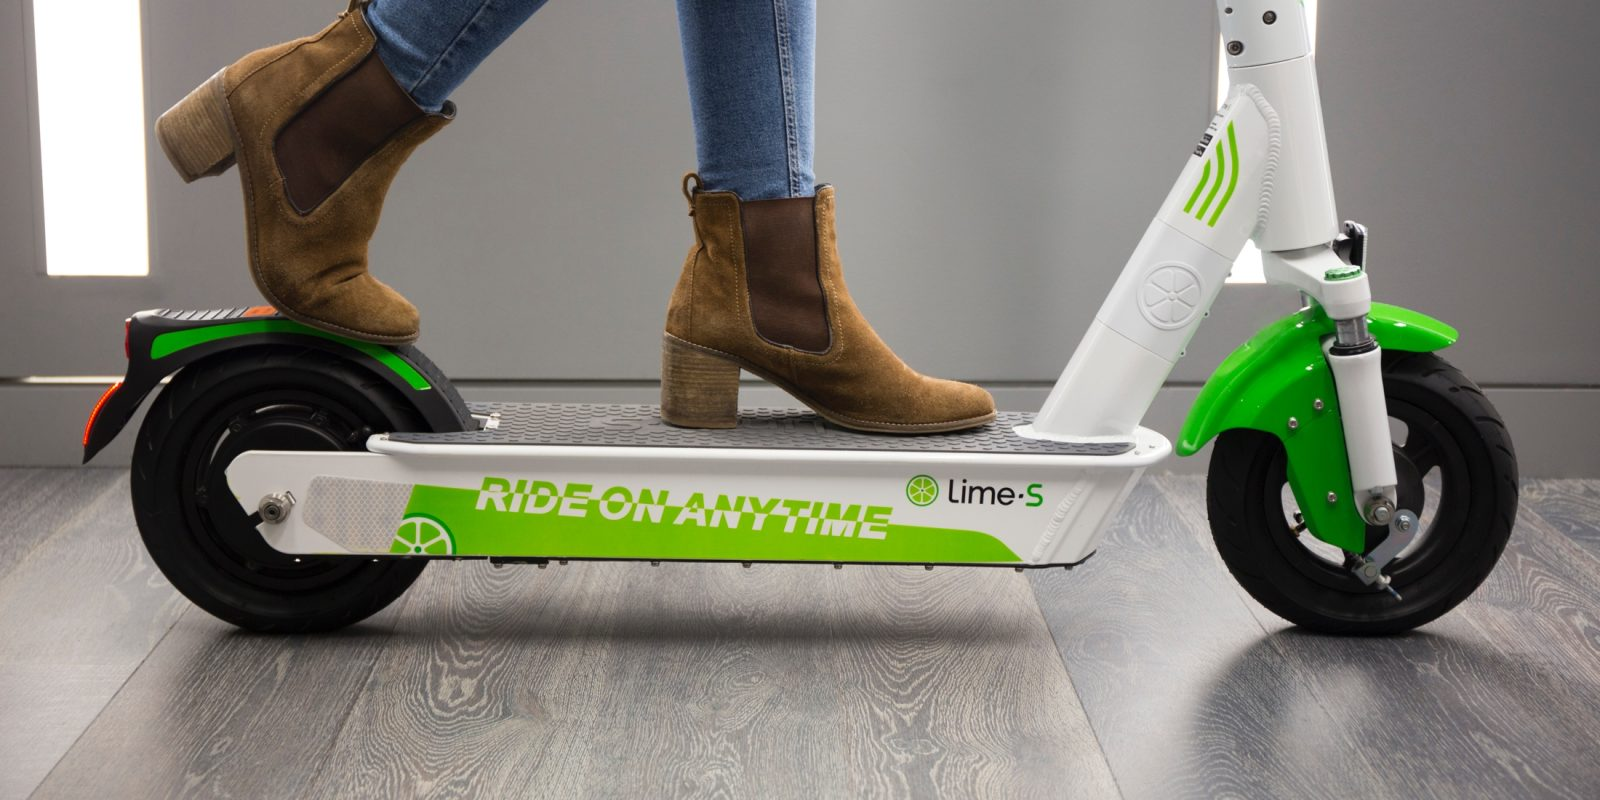 Lime Unveils New Electric Scooter Fuels The E Arms Race